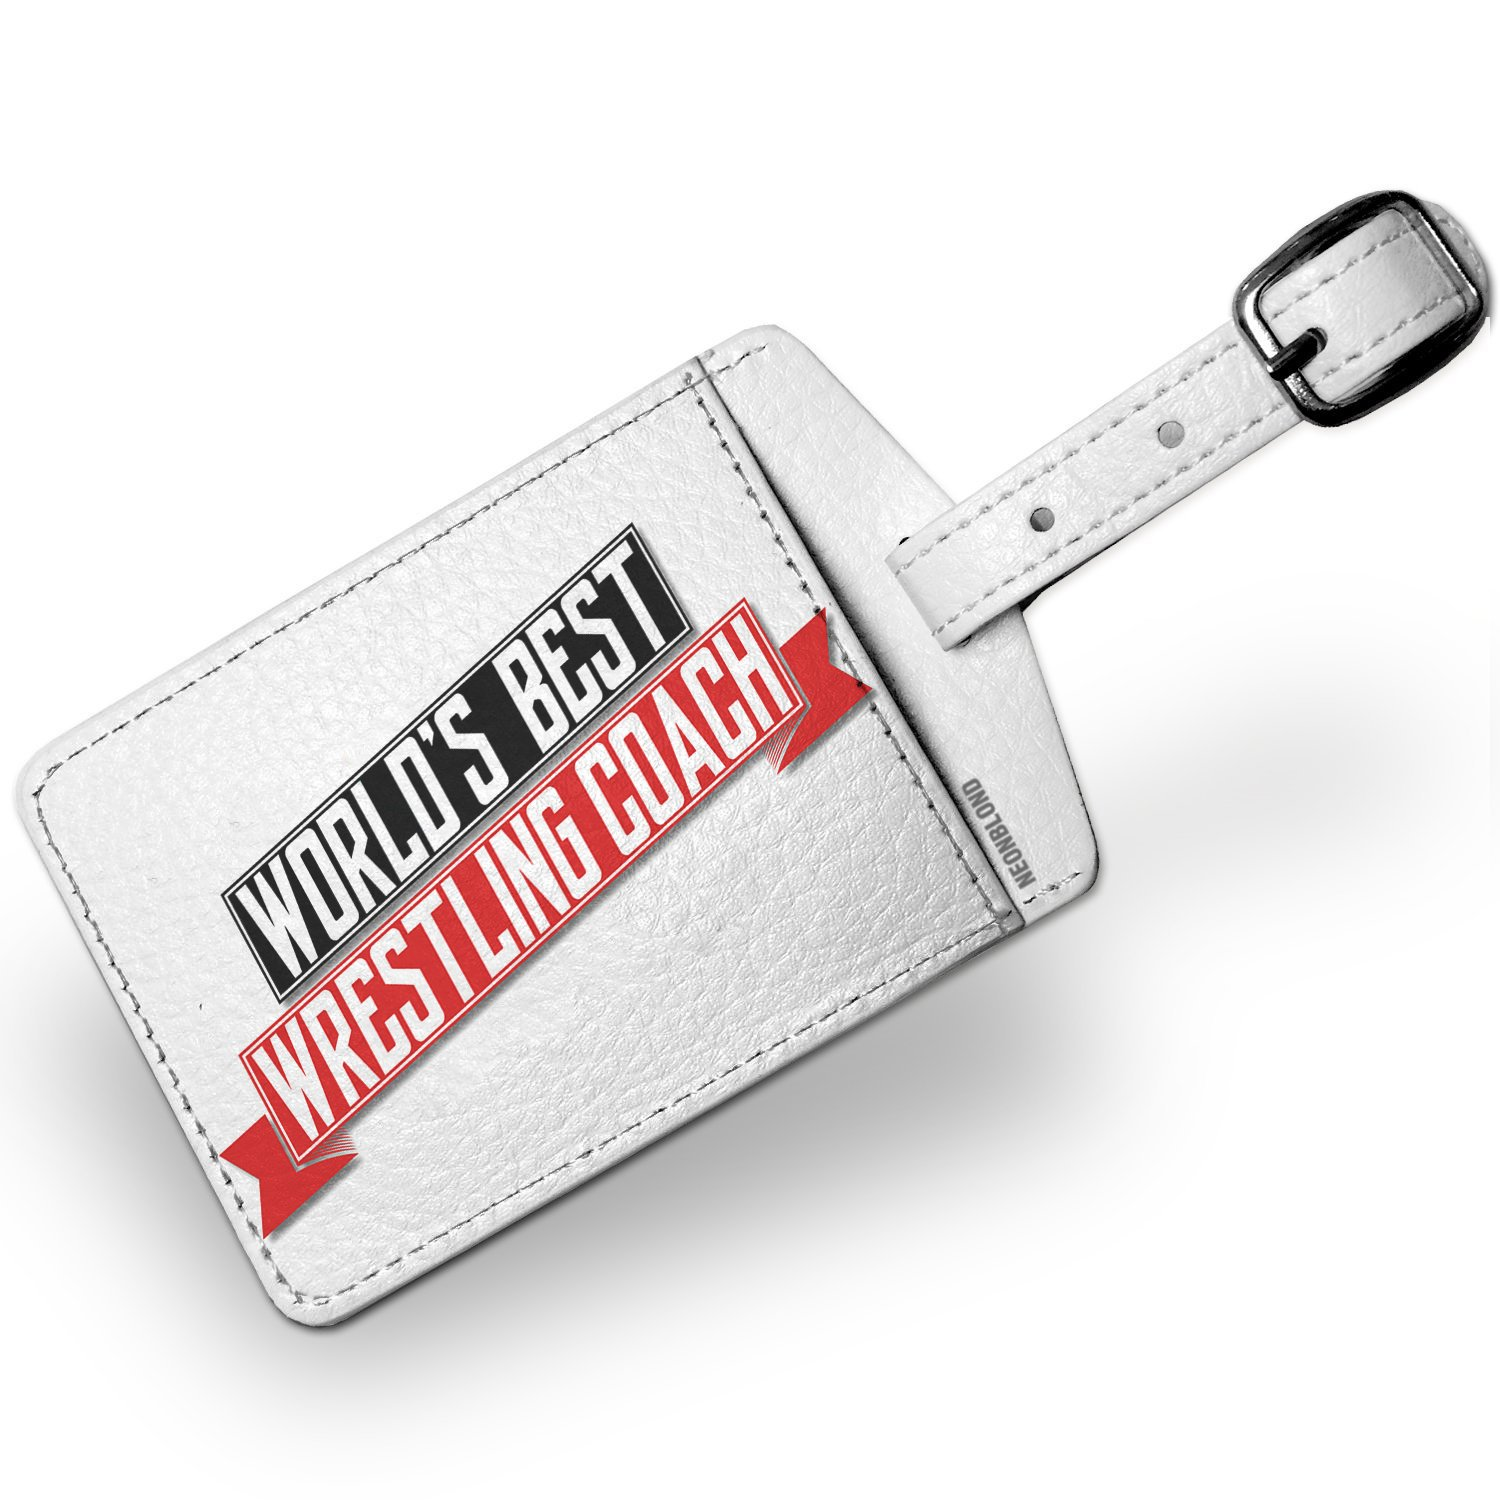 Luggage Tag Worlds Best Wrestling Coach - NEONBLOND by NEONBLOND